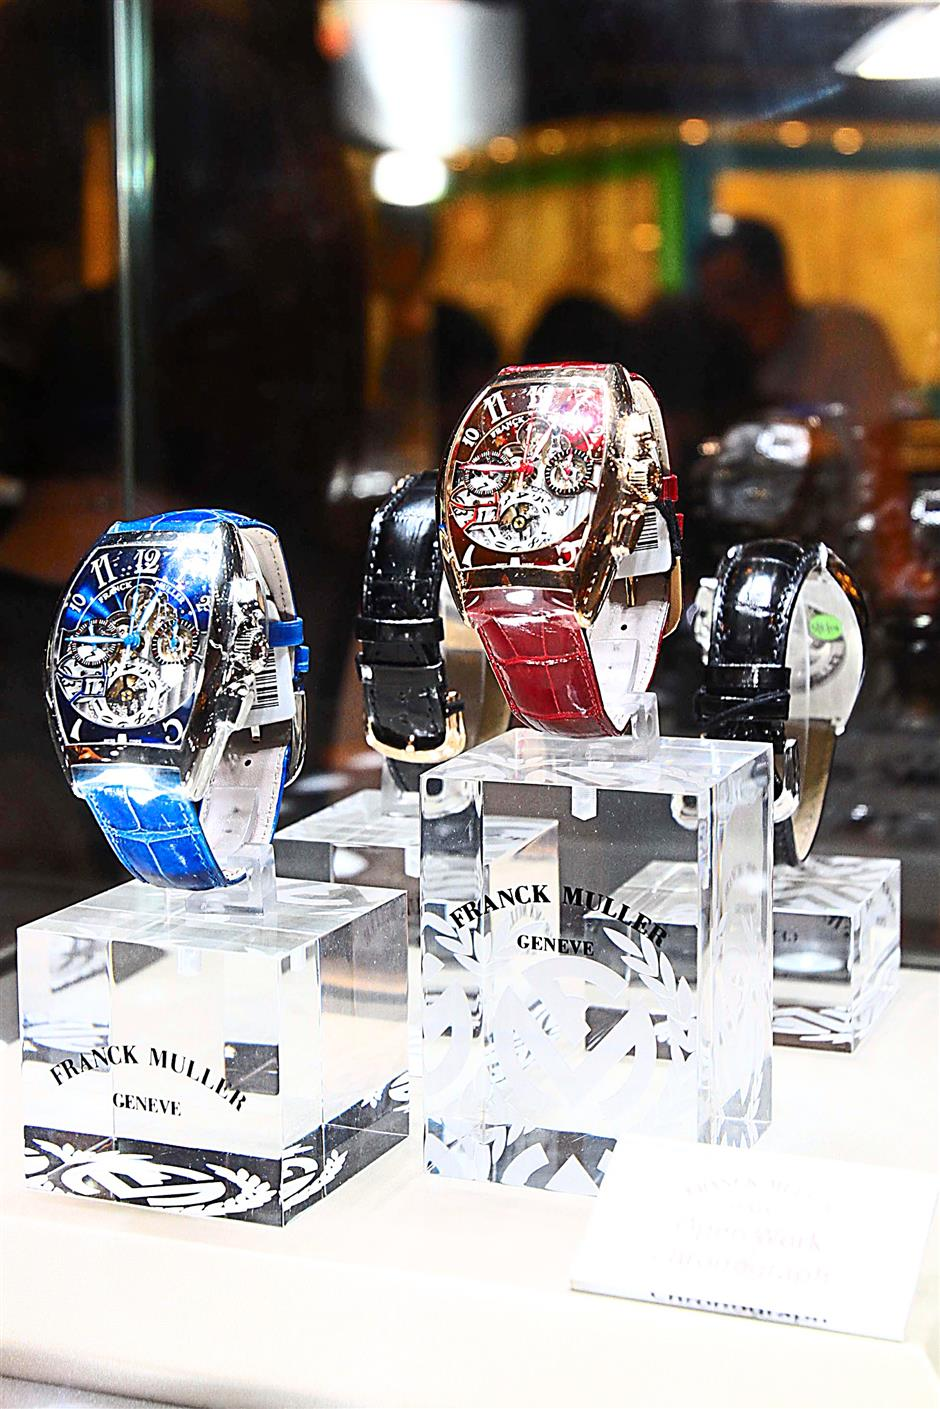 Some of the elegent Franck Muller timepieces put on display at the WPHH Southeast Asia Exhibition.